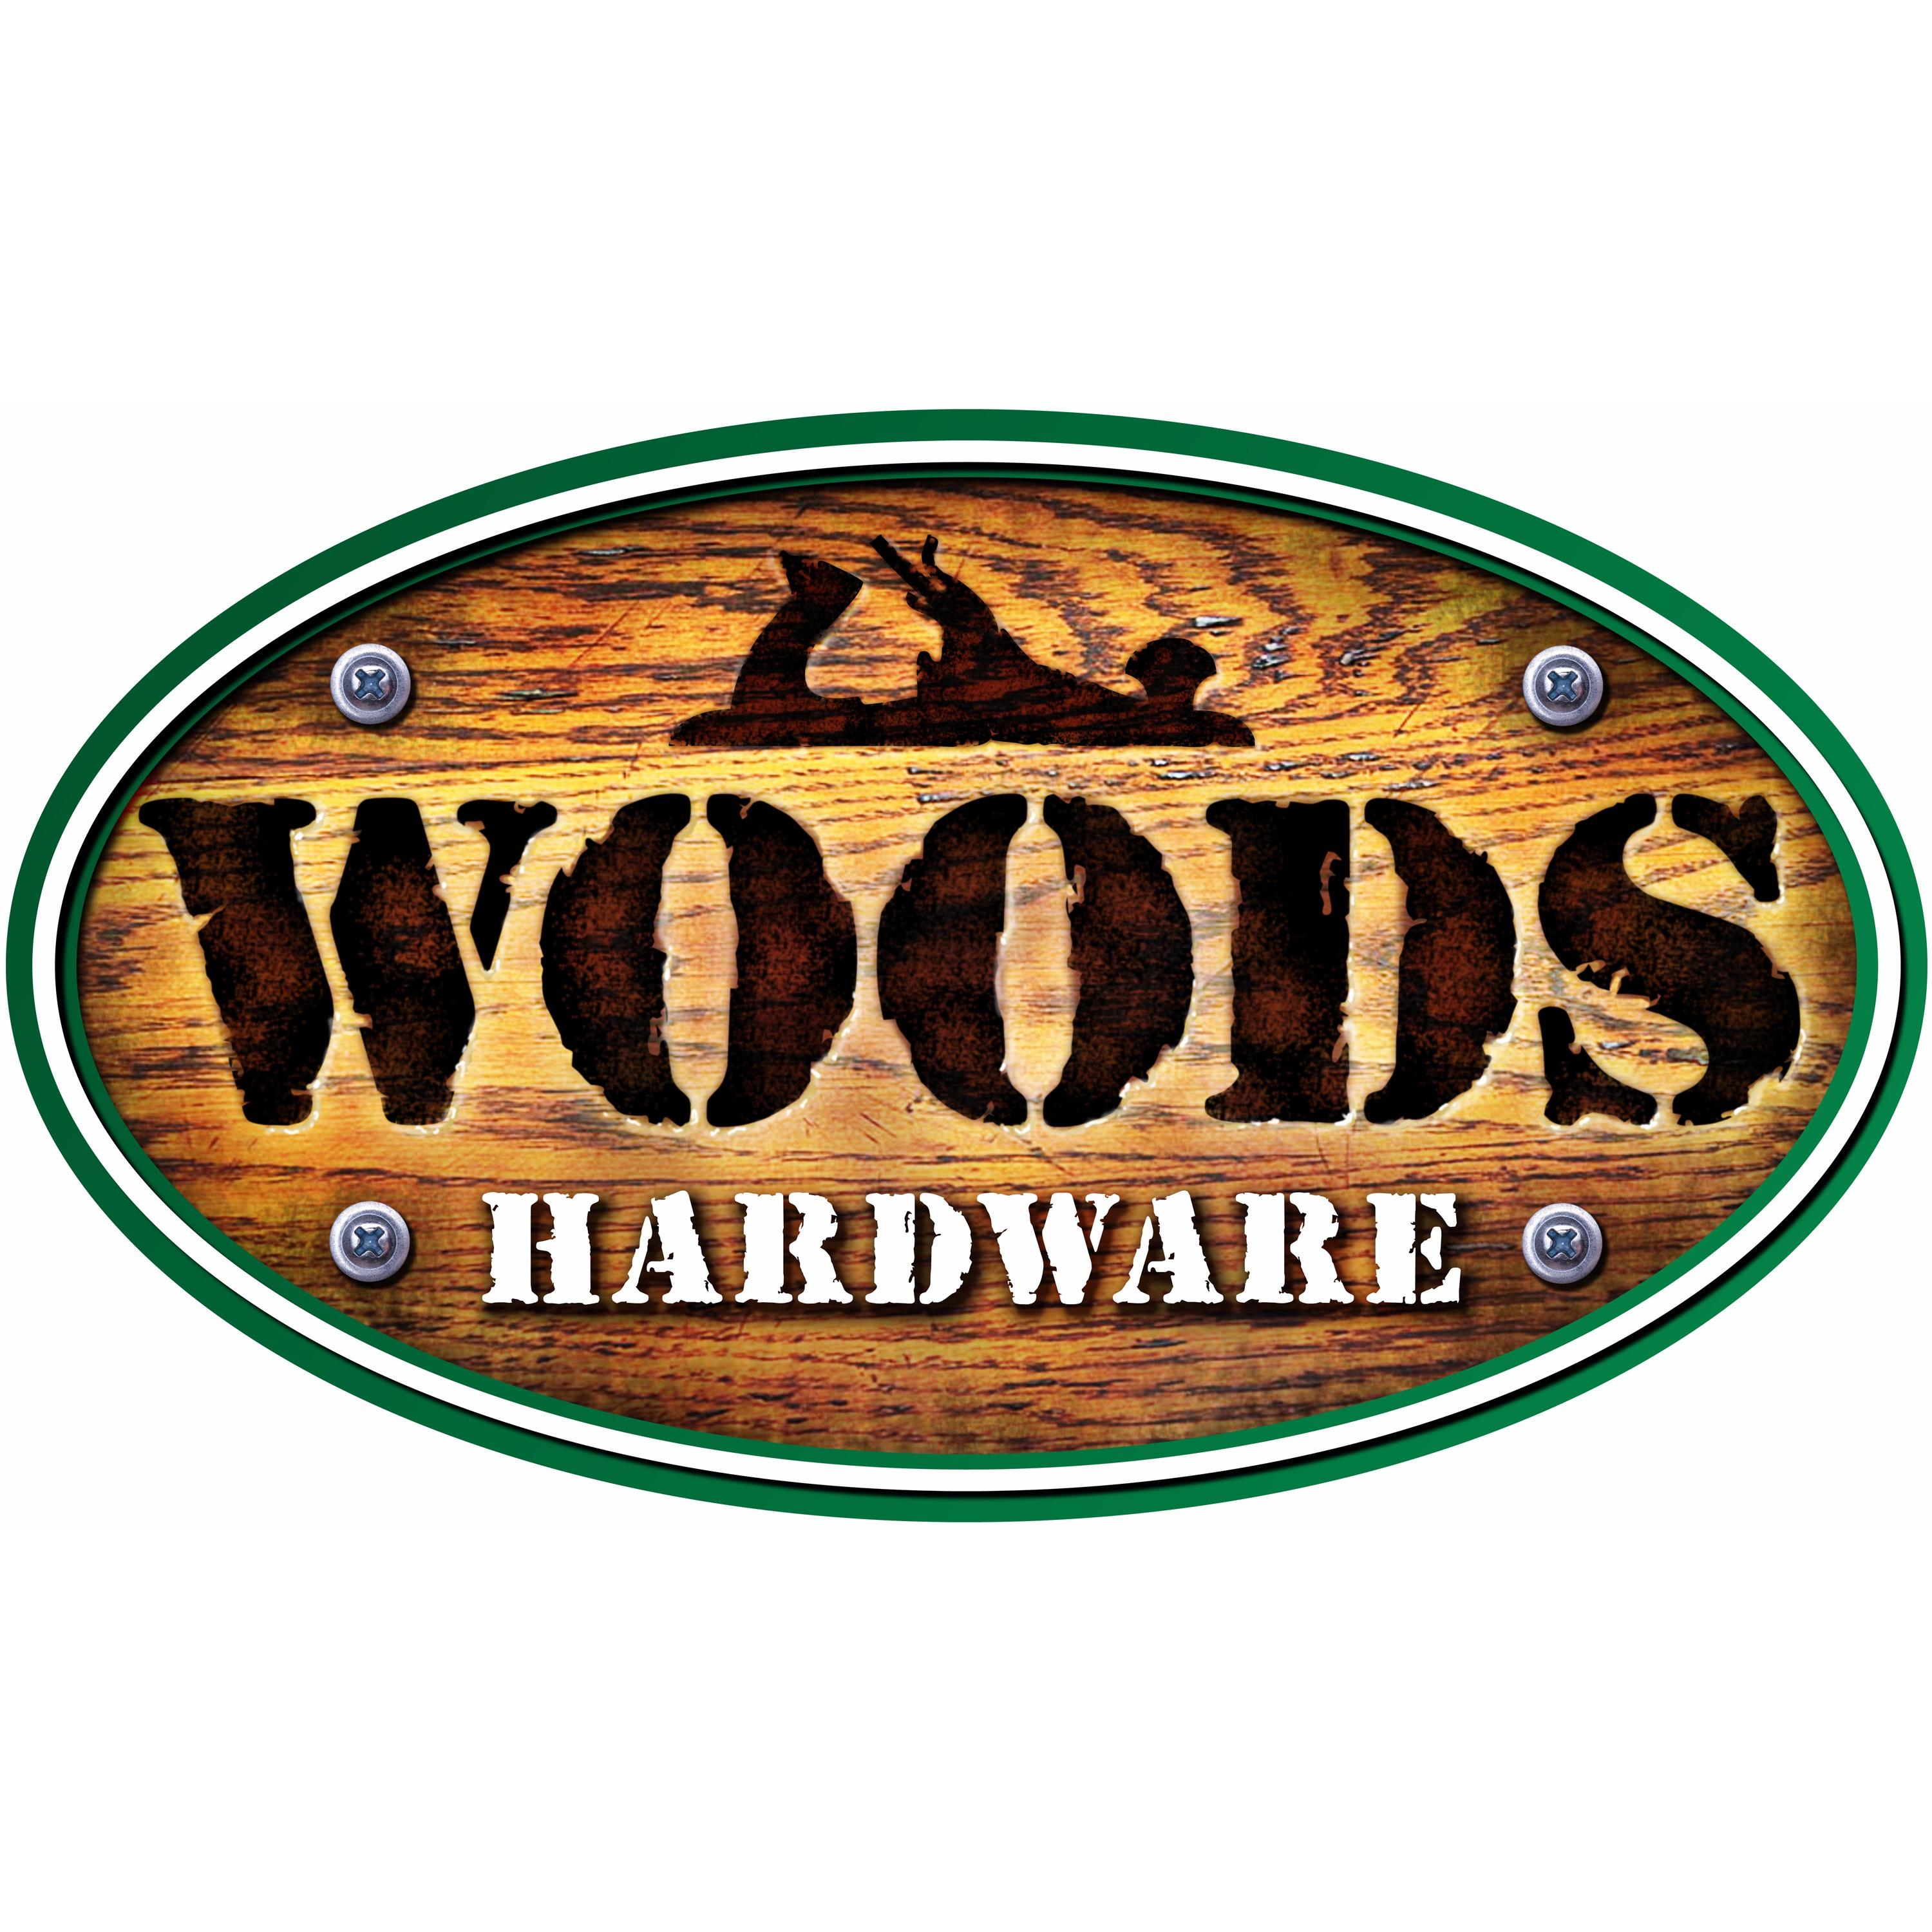 Woods Hardware of Cheviot